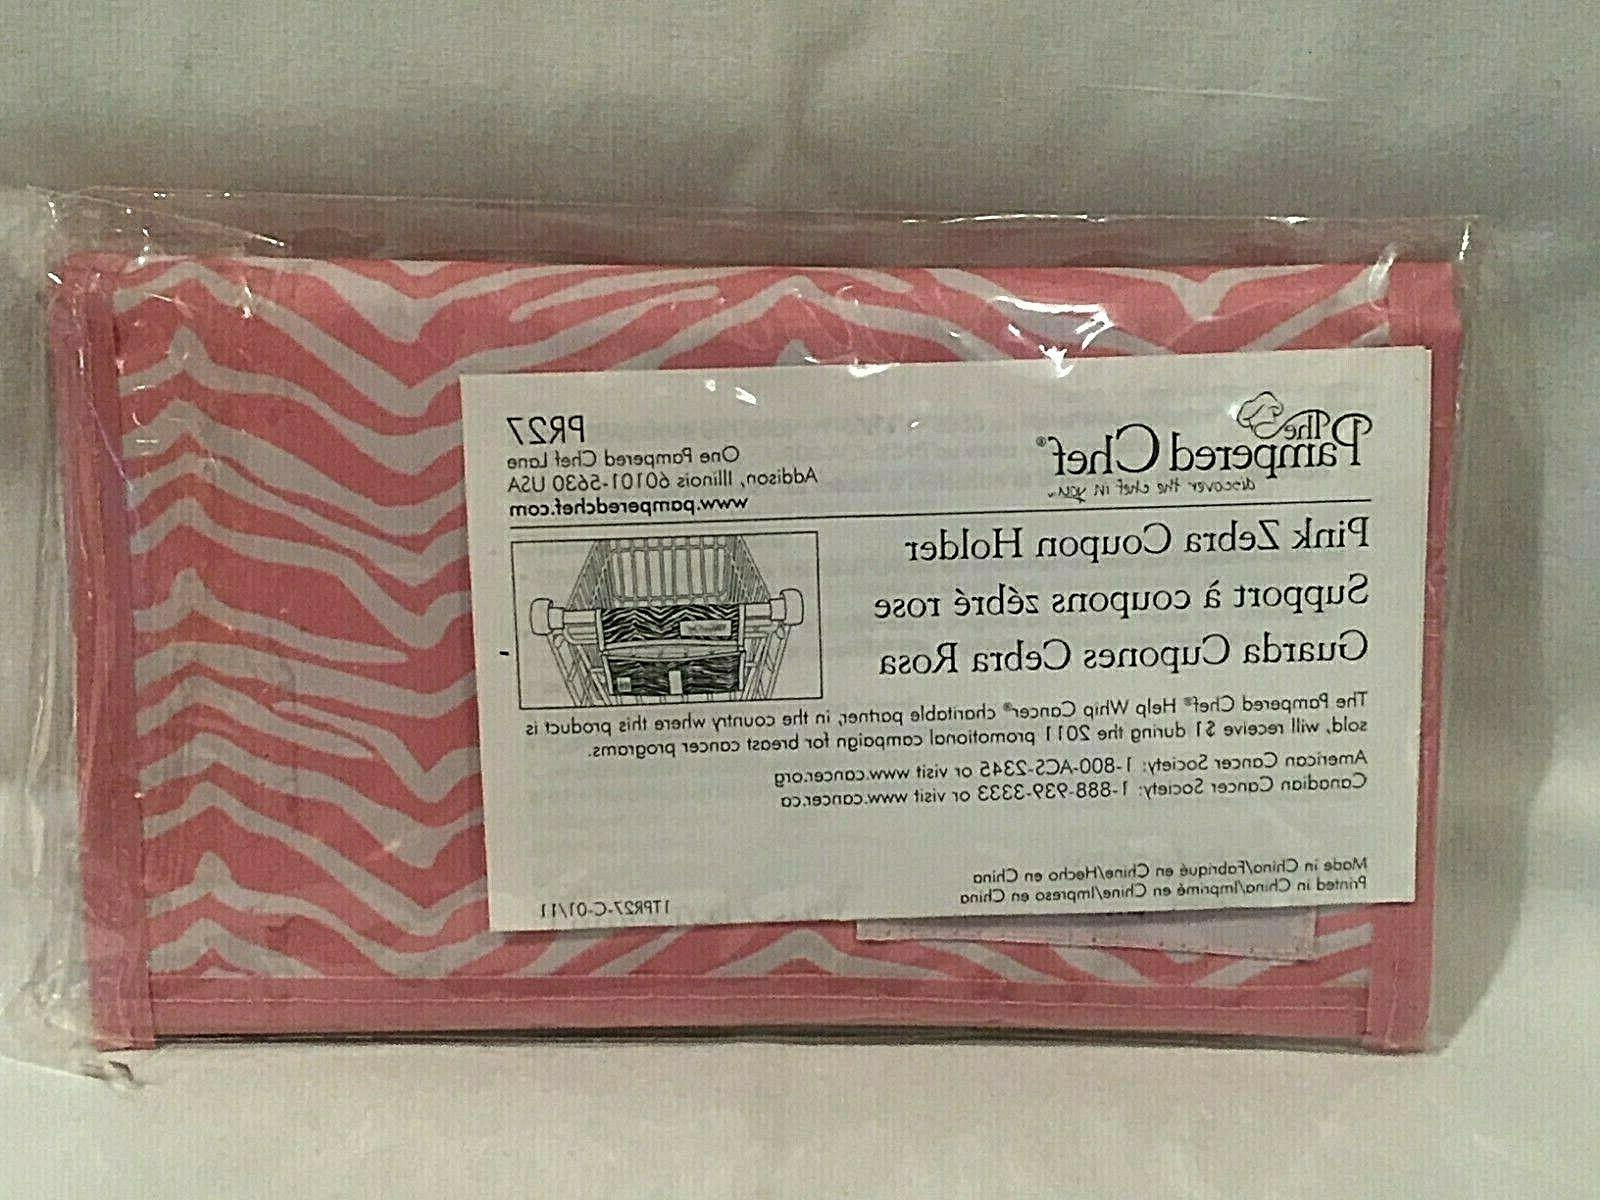 pampered chef coupon holder organizer help whip